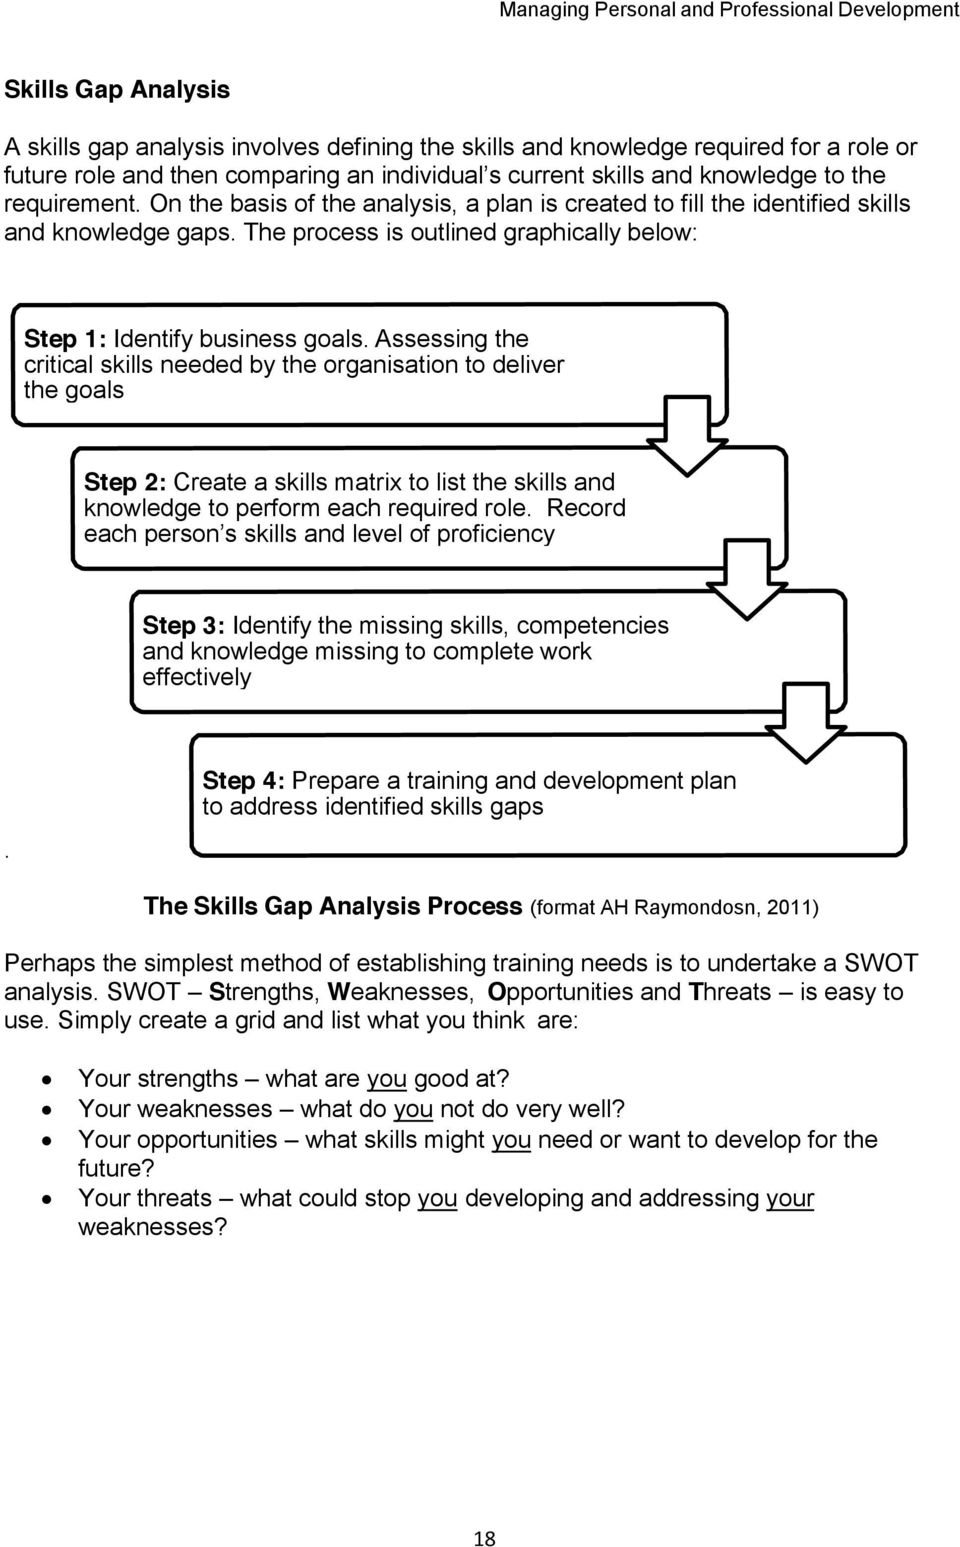 level diploma in management pdf the process is outlined graphically below step 1 identify business goals